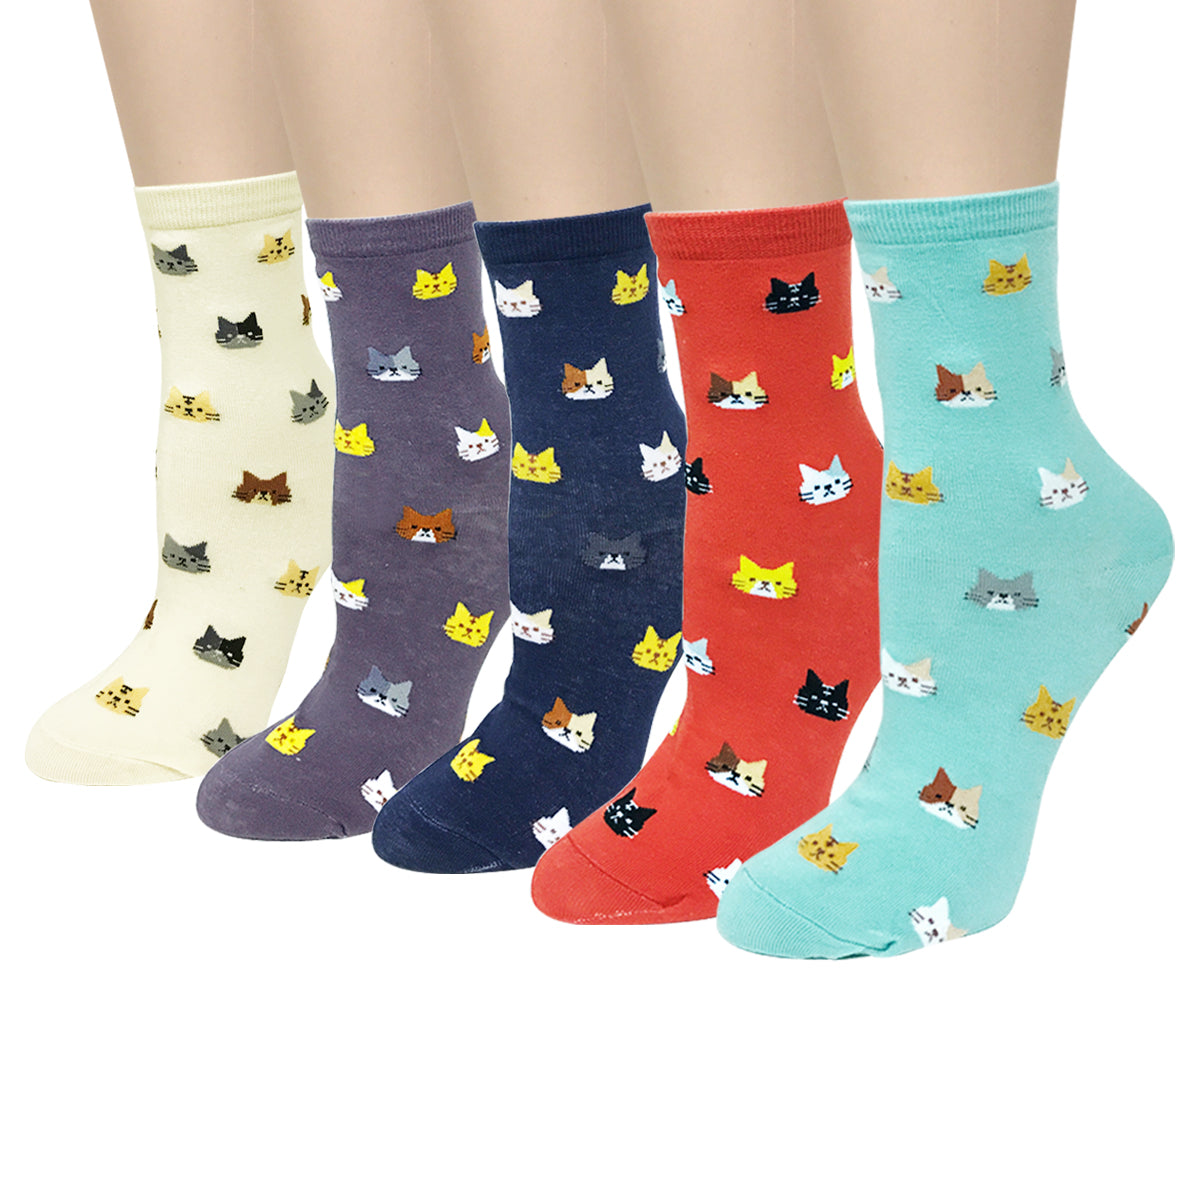 Wrapables Novelty Animal Print Crew Socks (Set of 5), Cutie Cat